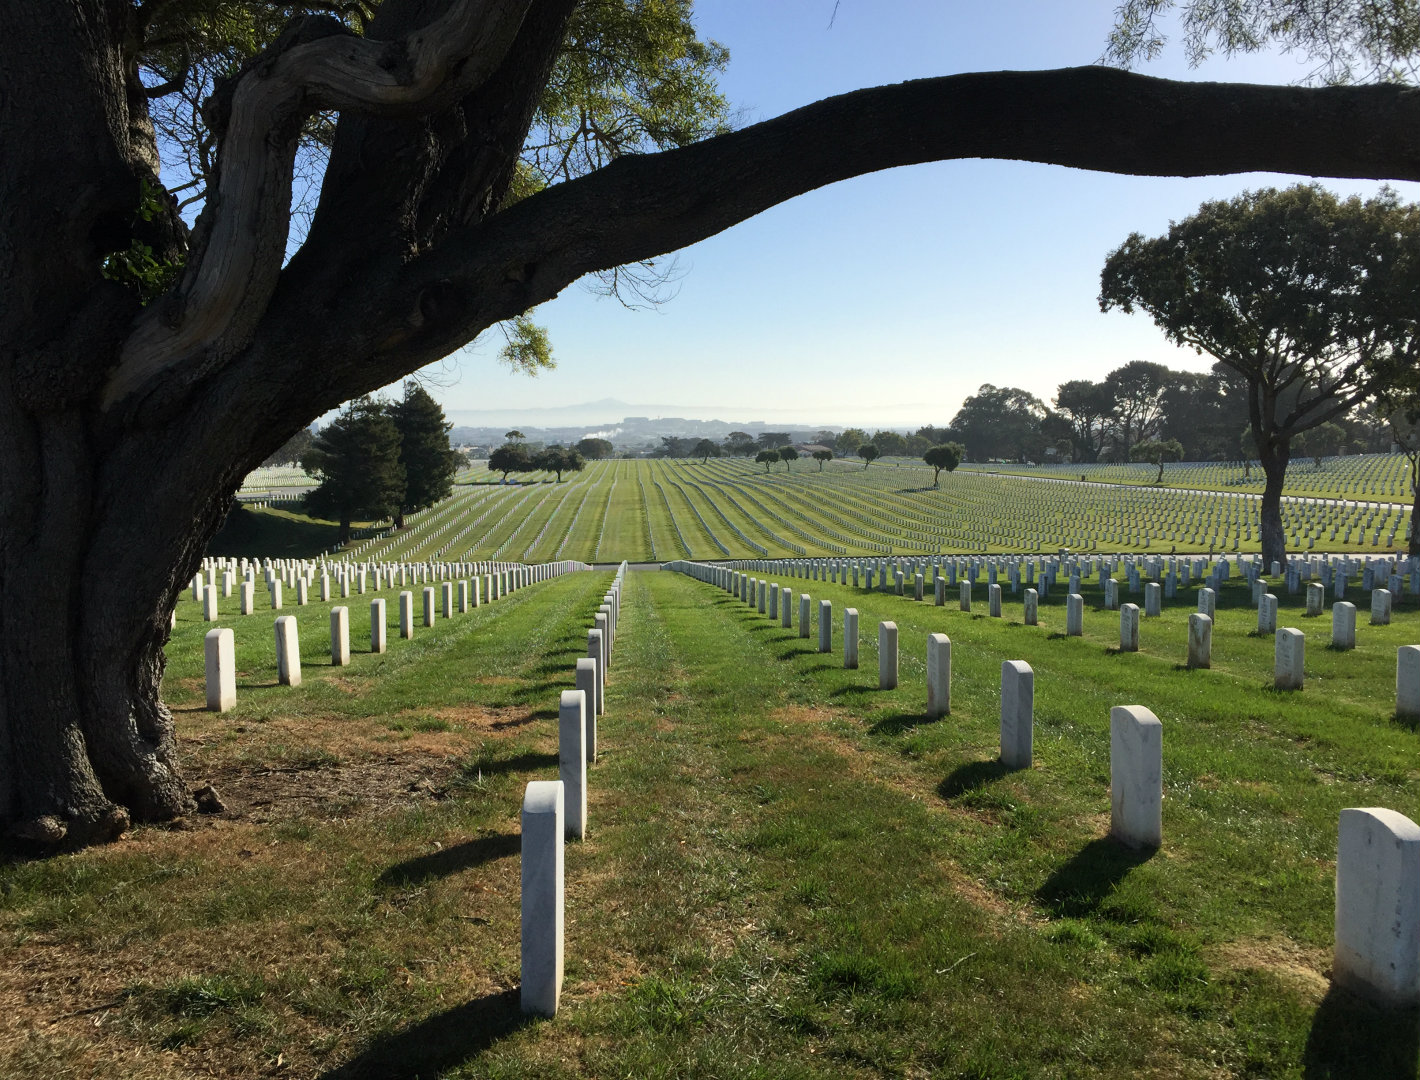 Tens of thousands of veterans, along with their spouses and children, are buried at Golden Gate National Cemetery in San Bruno. Veterans Administration officials say they get phone calls and letters if a site doesn't look cared for. (Daniel Potter/KQED)